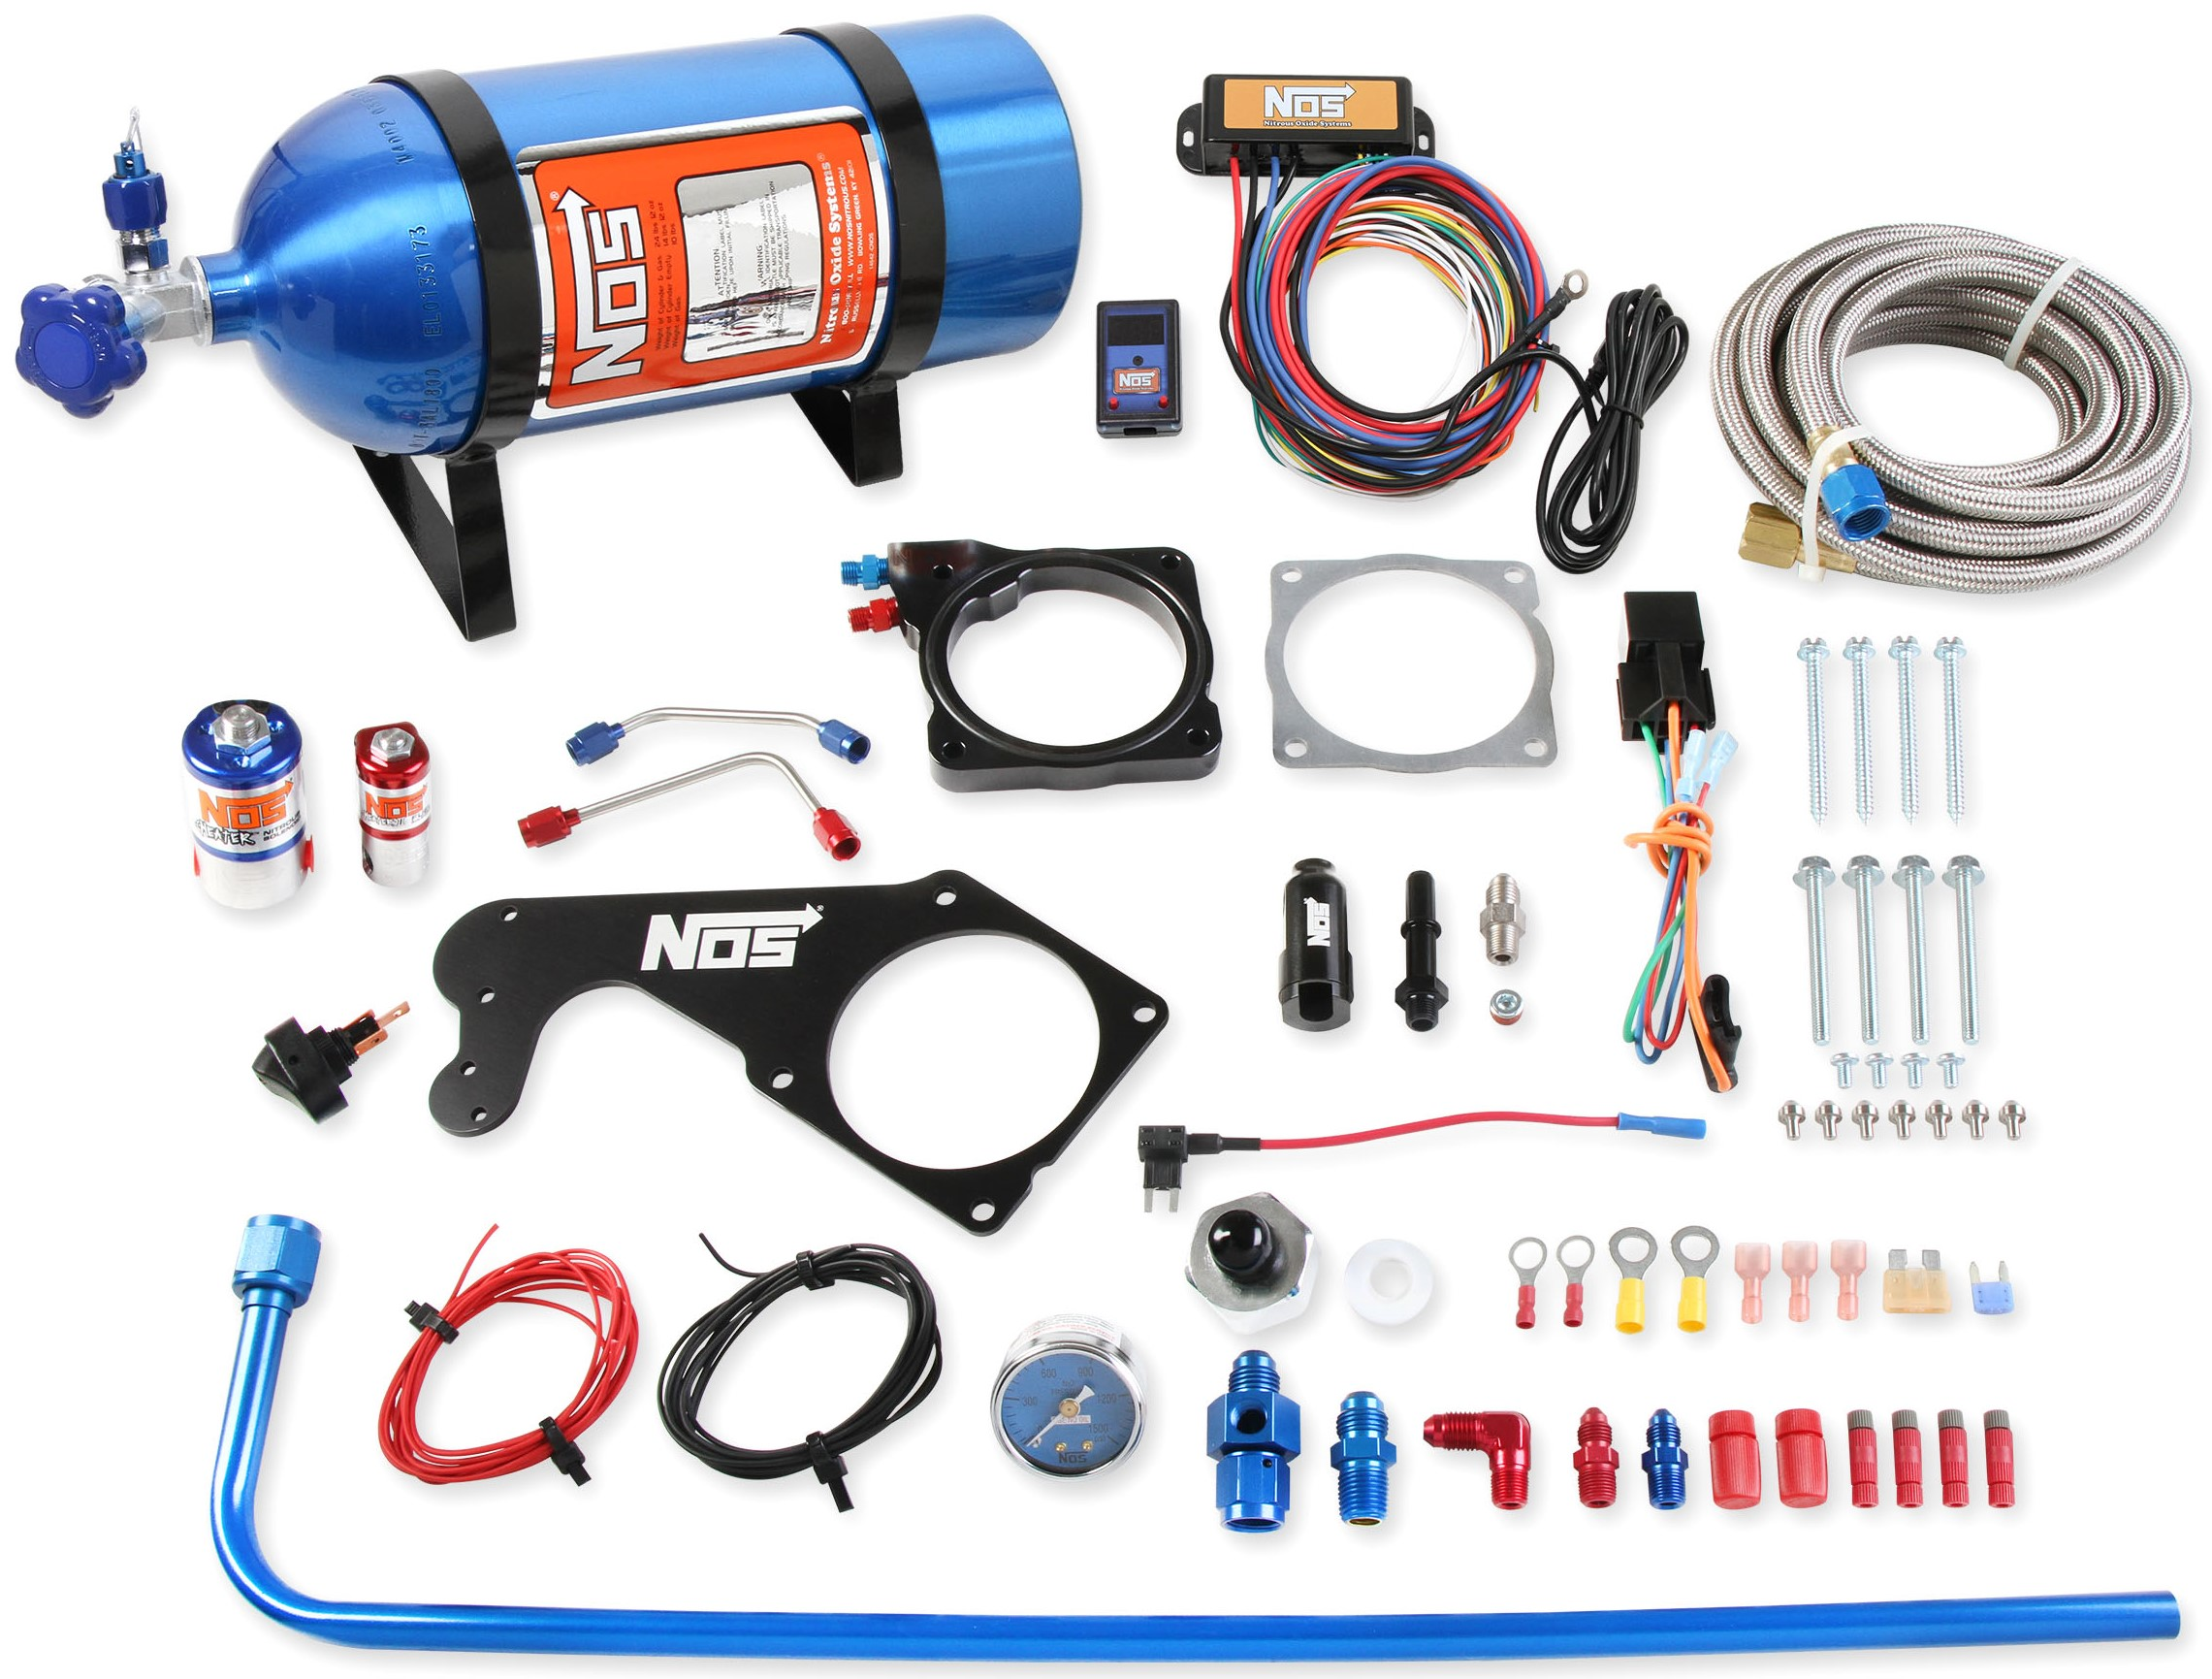 Nitrous Oxide Systems And MSD Now Have A Complete Nitrous Kit For Your Late-Model Hemi-Powered Mopar LX!